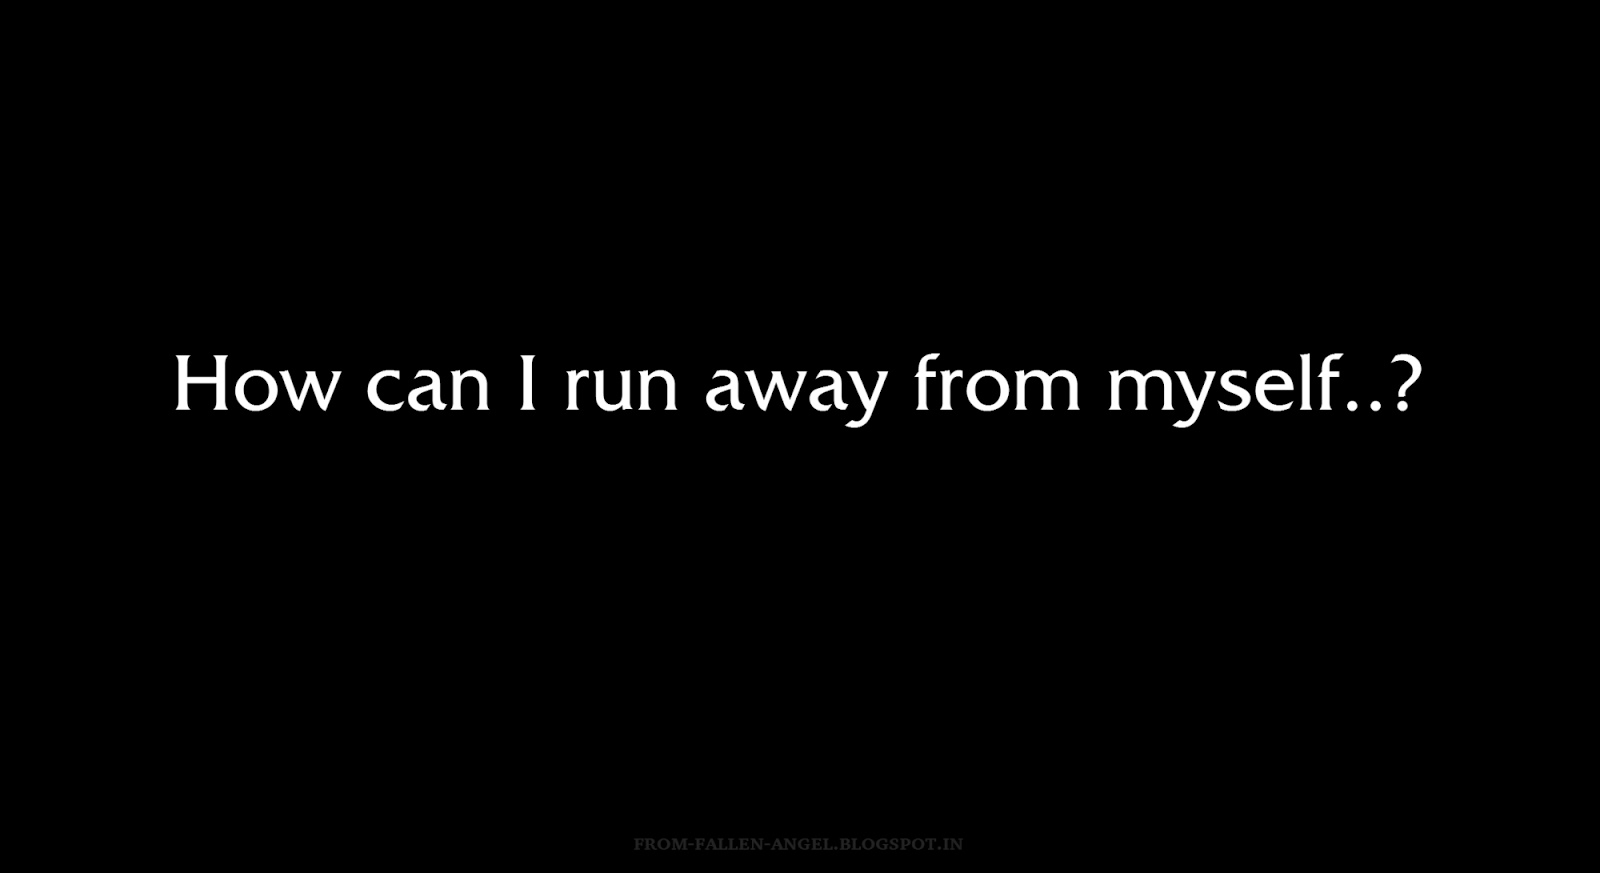 How can I run away from myself